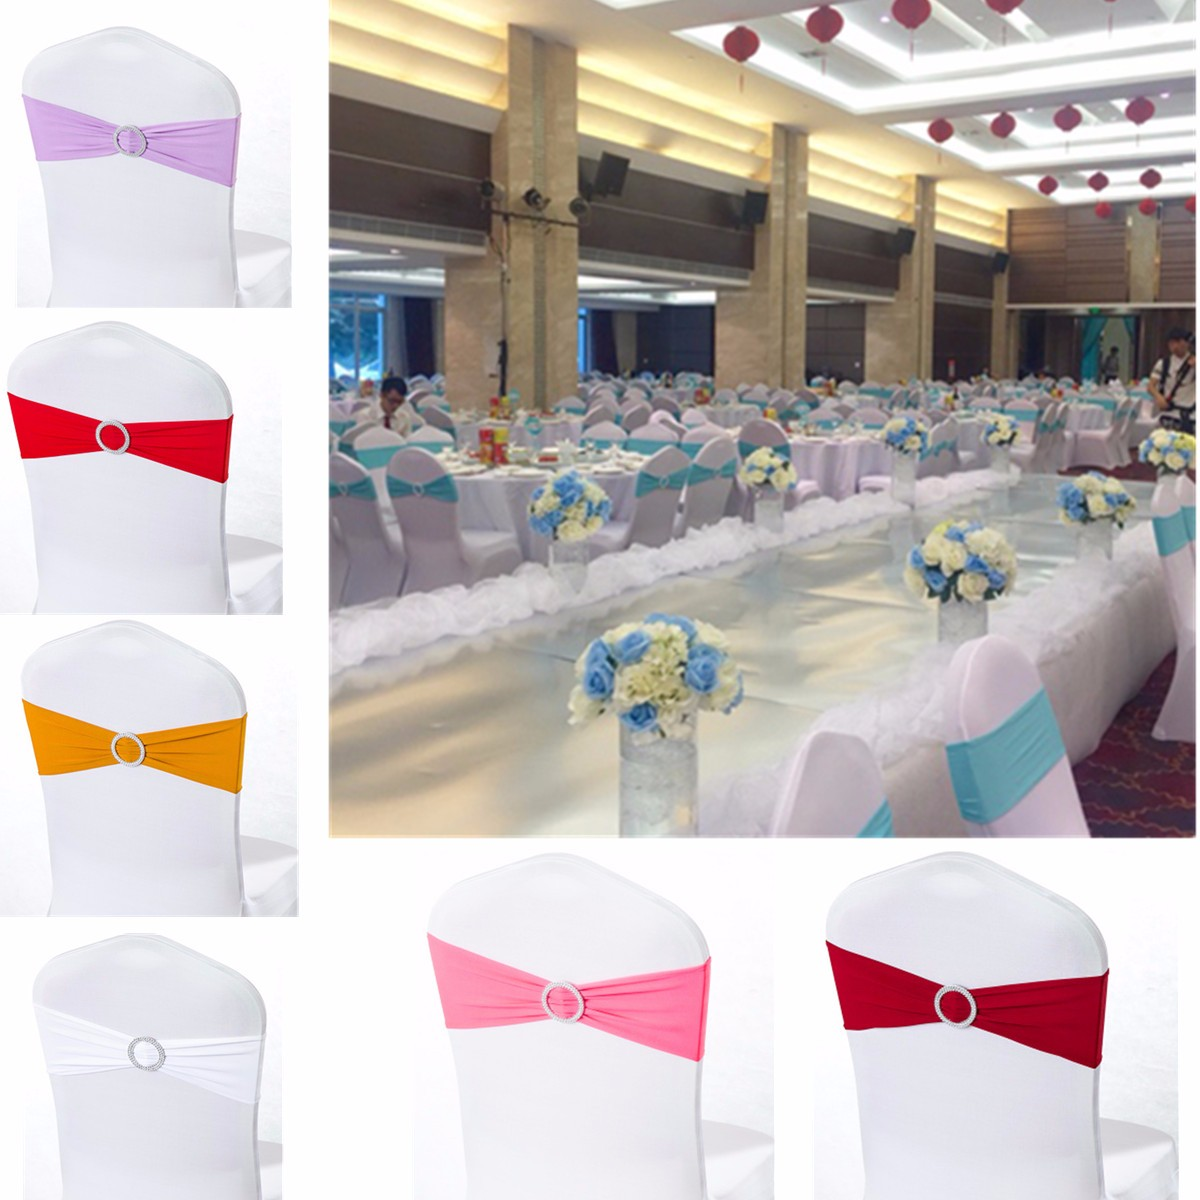 Folding chair covers wholesale under 1 - Wholesale 1 50 100 Stretch Wedding Chair Cover